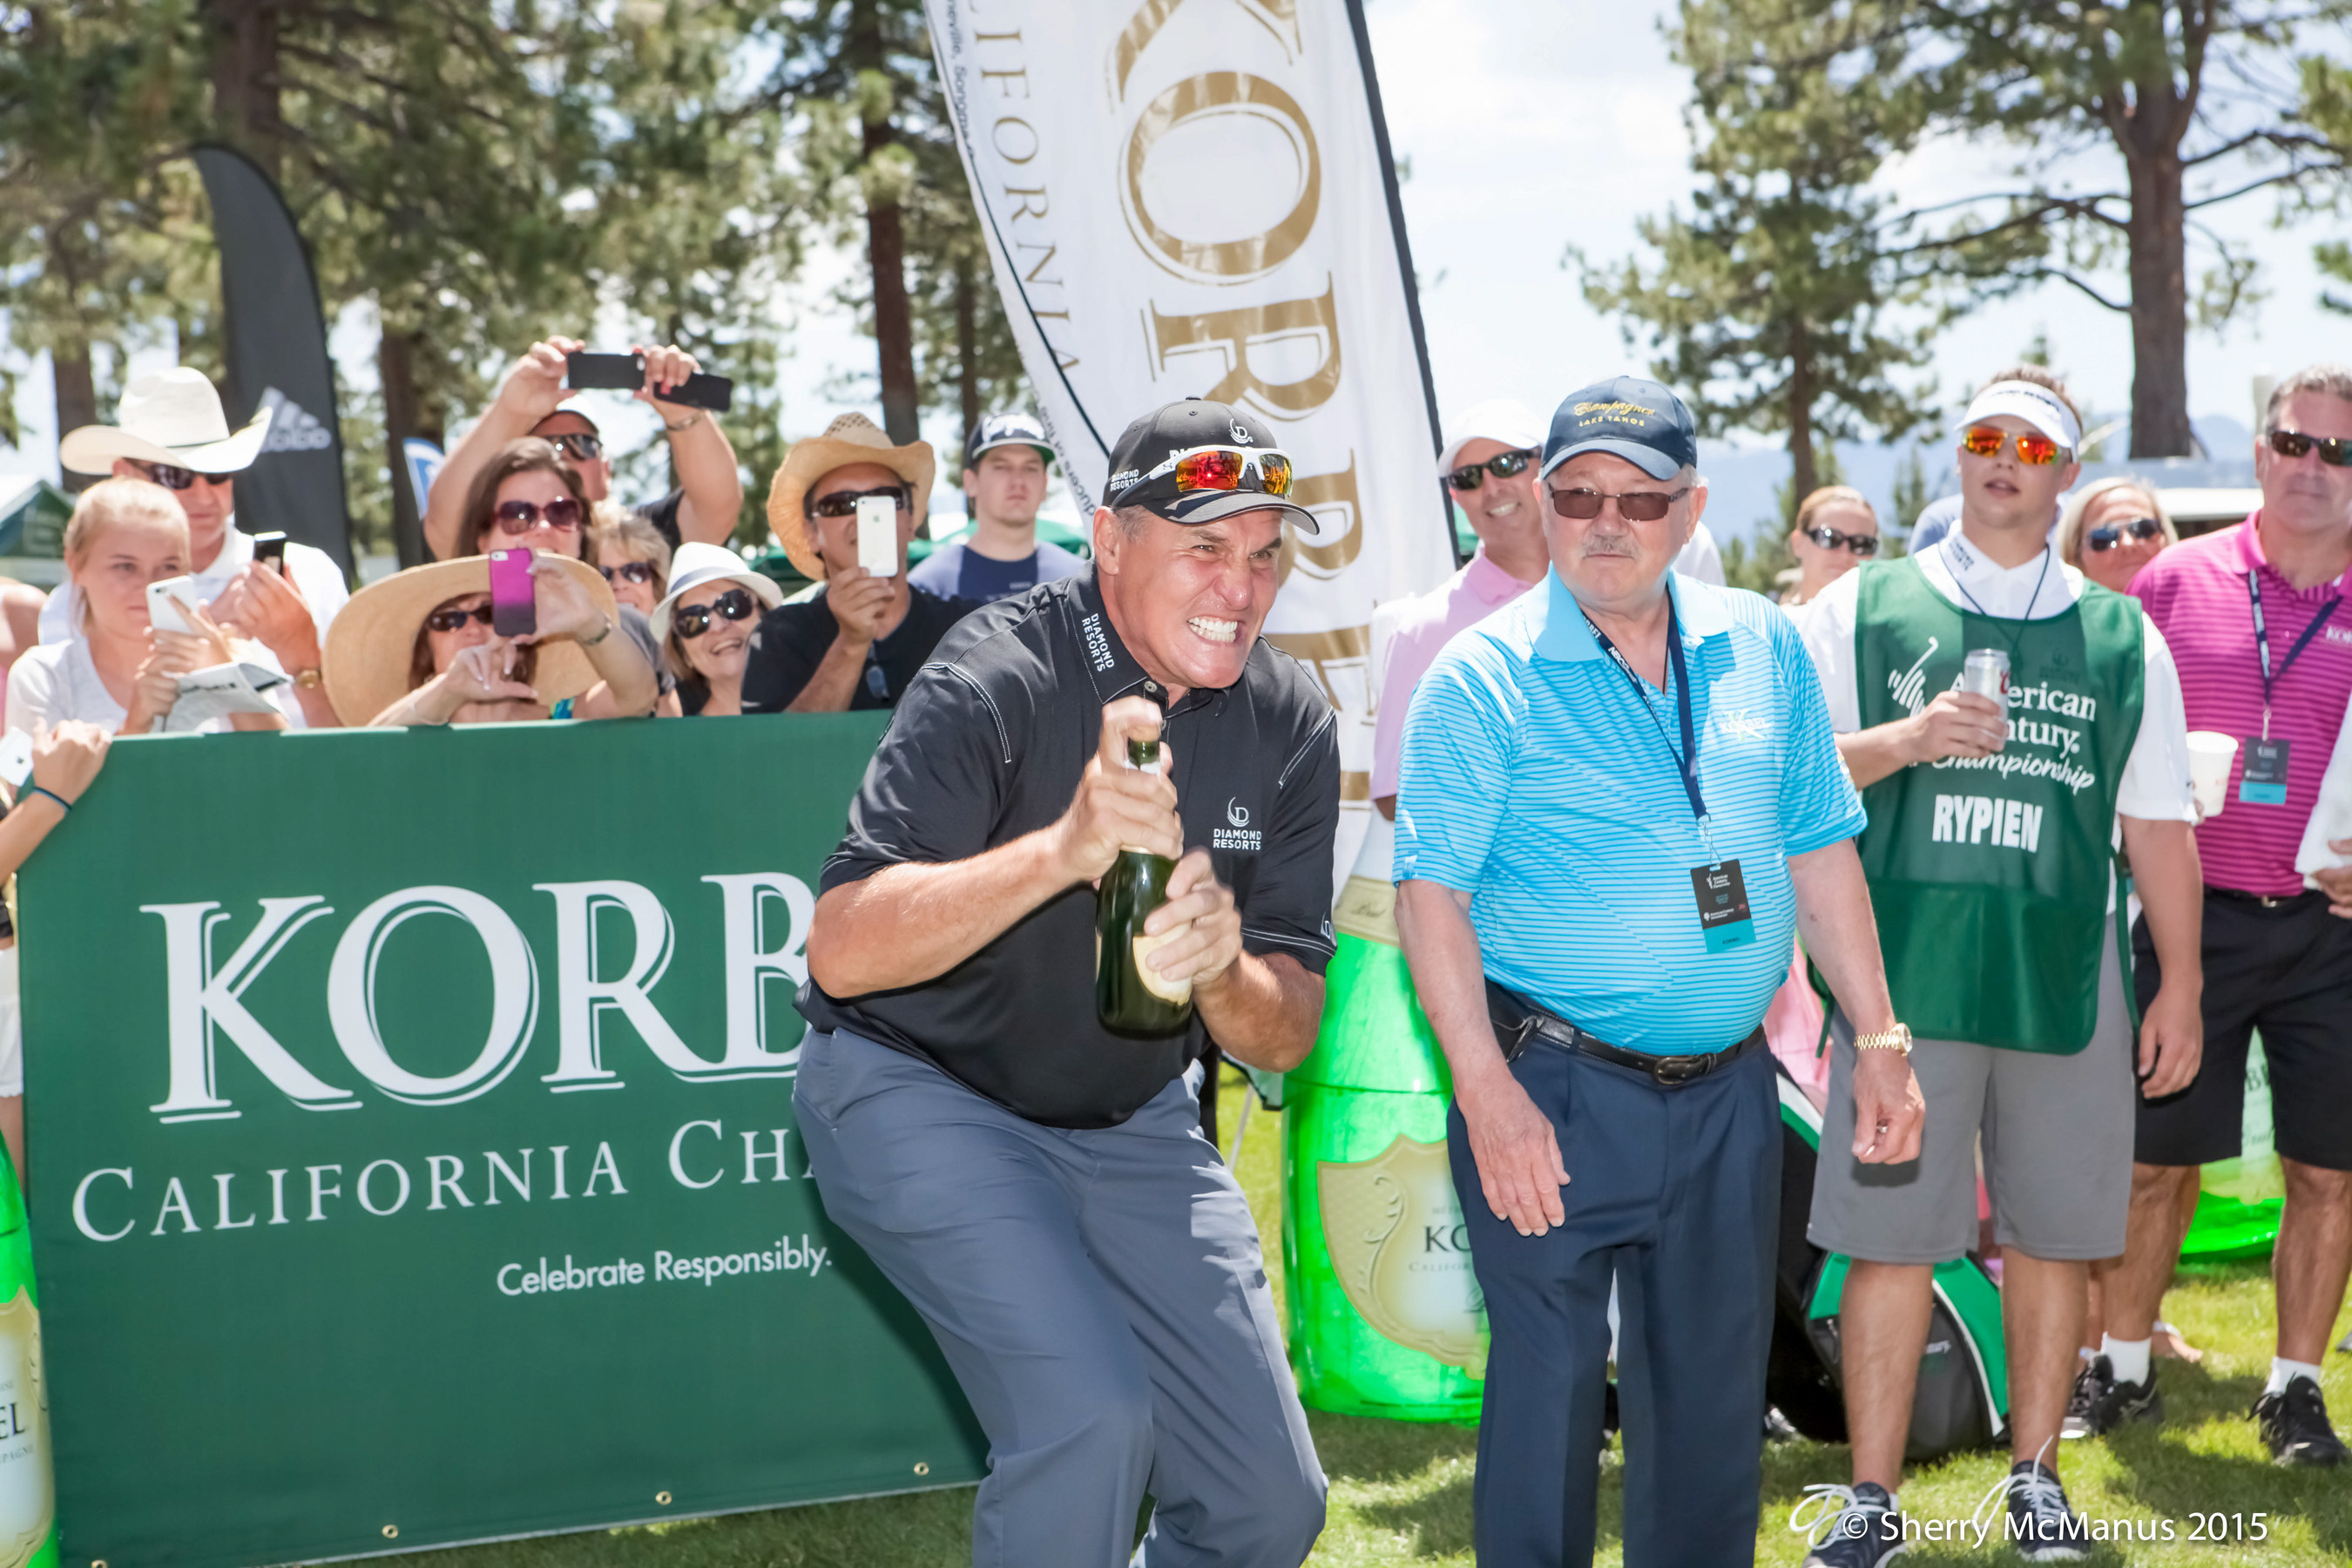 Legends Of Sports And Entertainment Rypien, Jansen & Timberlake Vie For Title In Lake Tahoe